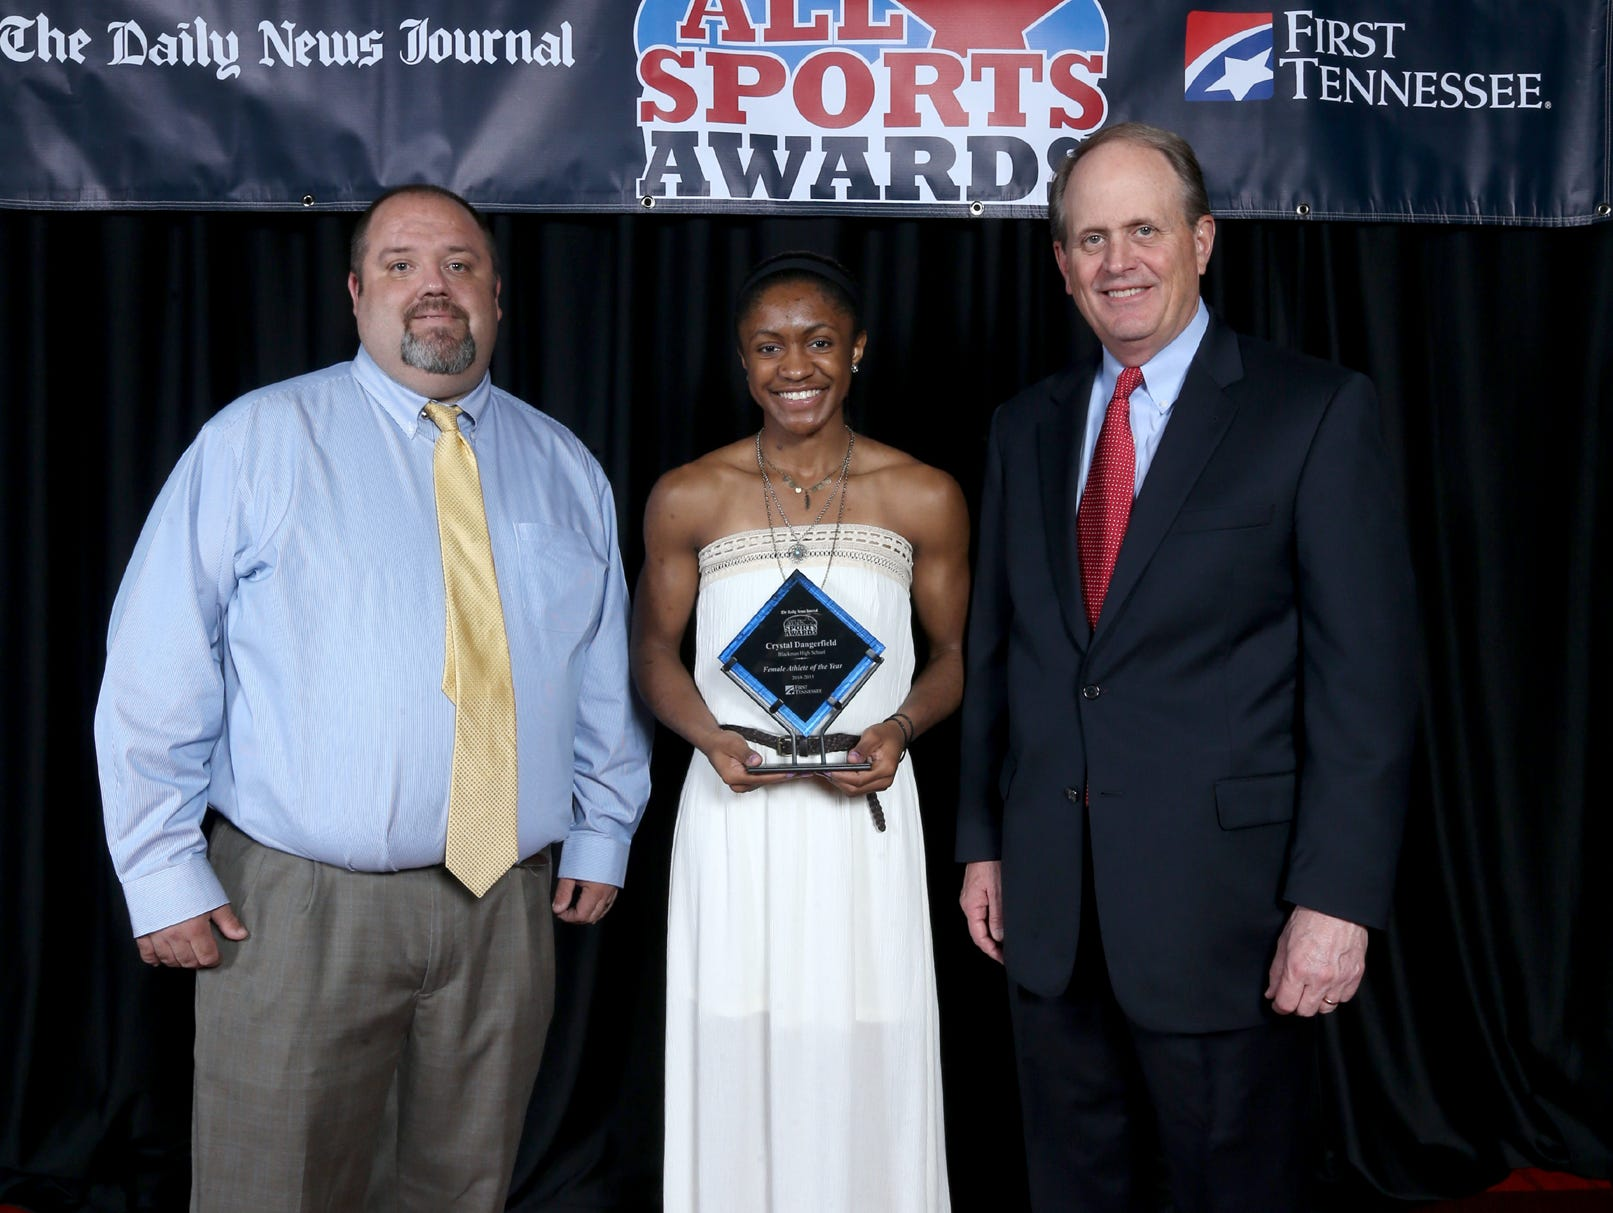 DNJ prep editor Tom Kreager, left, stands with Female Athlete of the Year Crystal Dangerfield and First Tennessee President Phil Holt at the 22nd Annual All Sports Awards Banquet on Sunday in Murfreesboro.